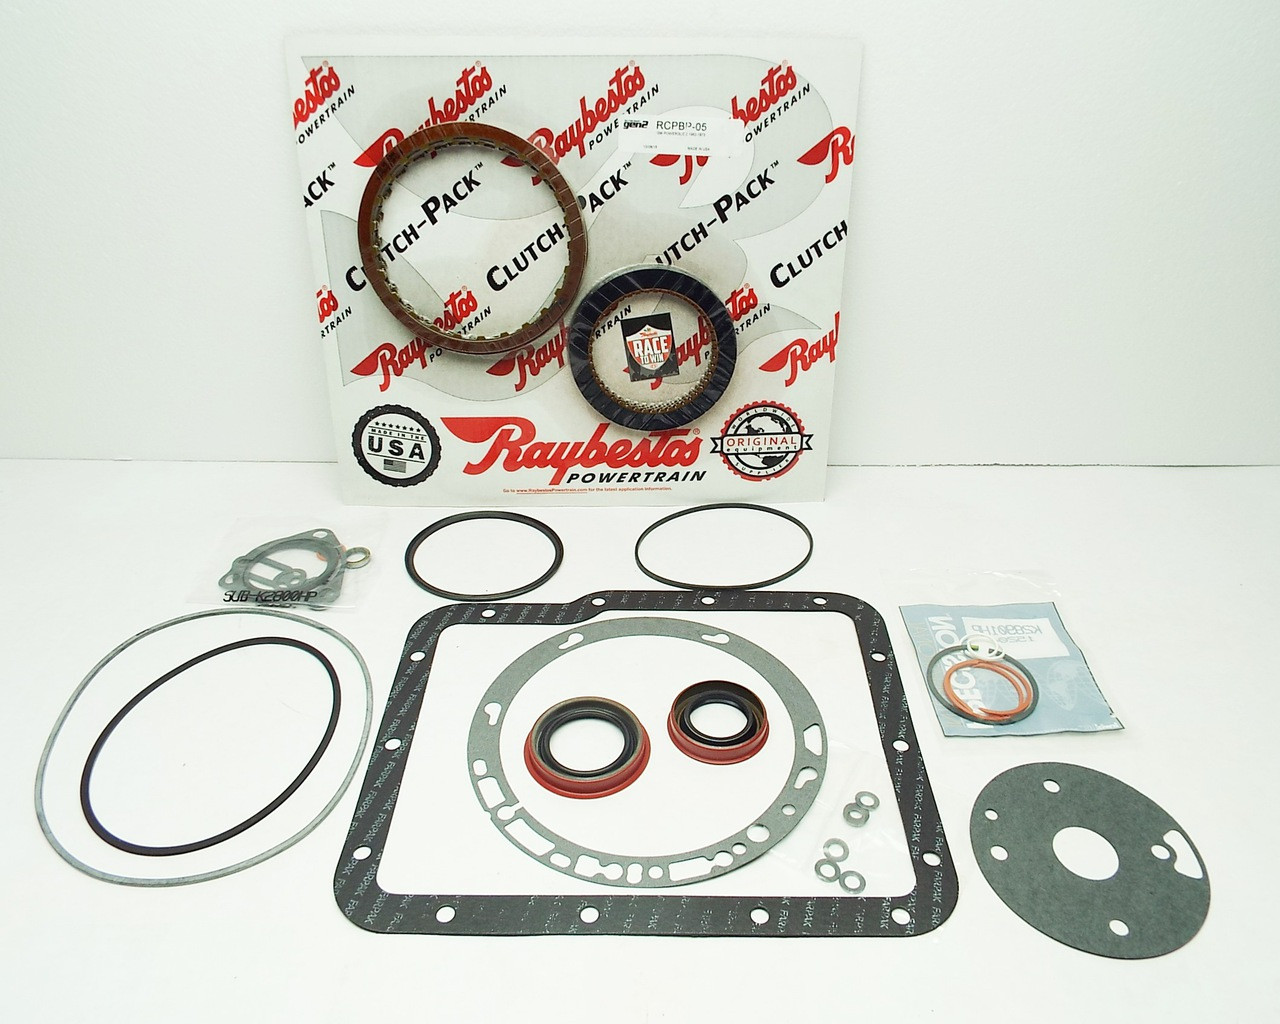 Gm Powerglide Banner Rebuild Kit For Racing W Raybestos Blue Plate